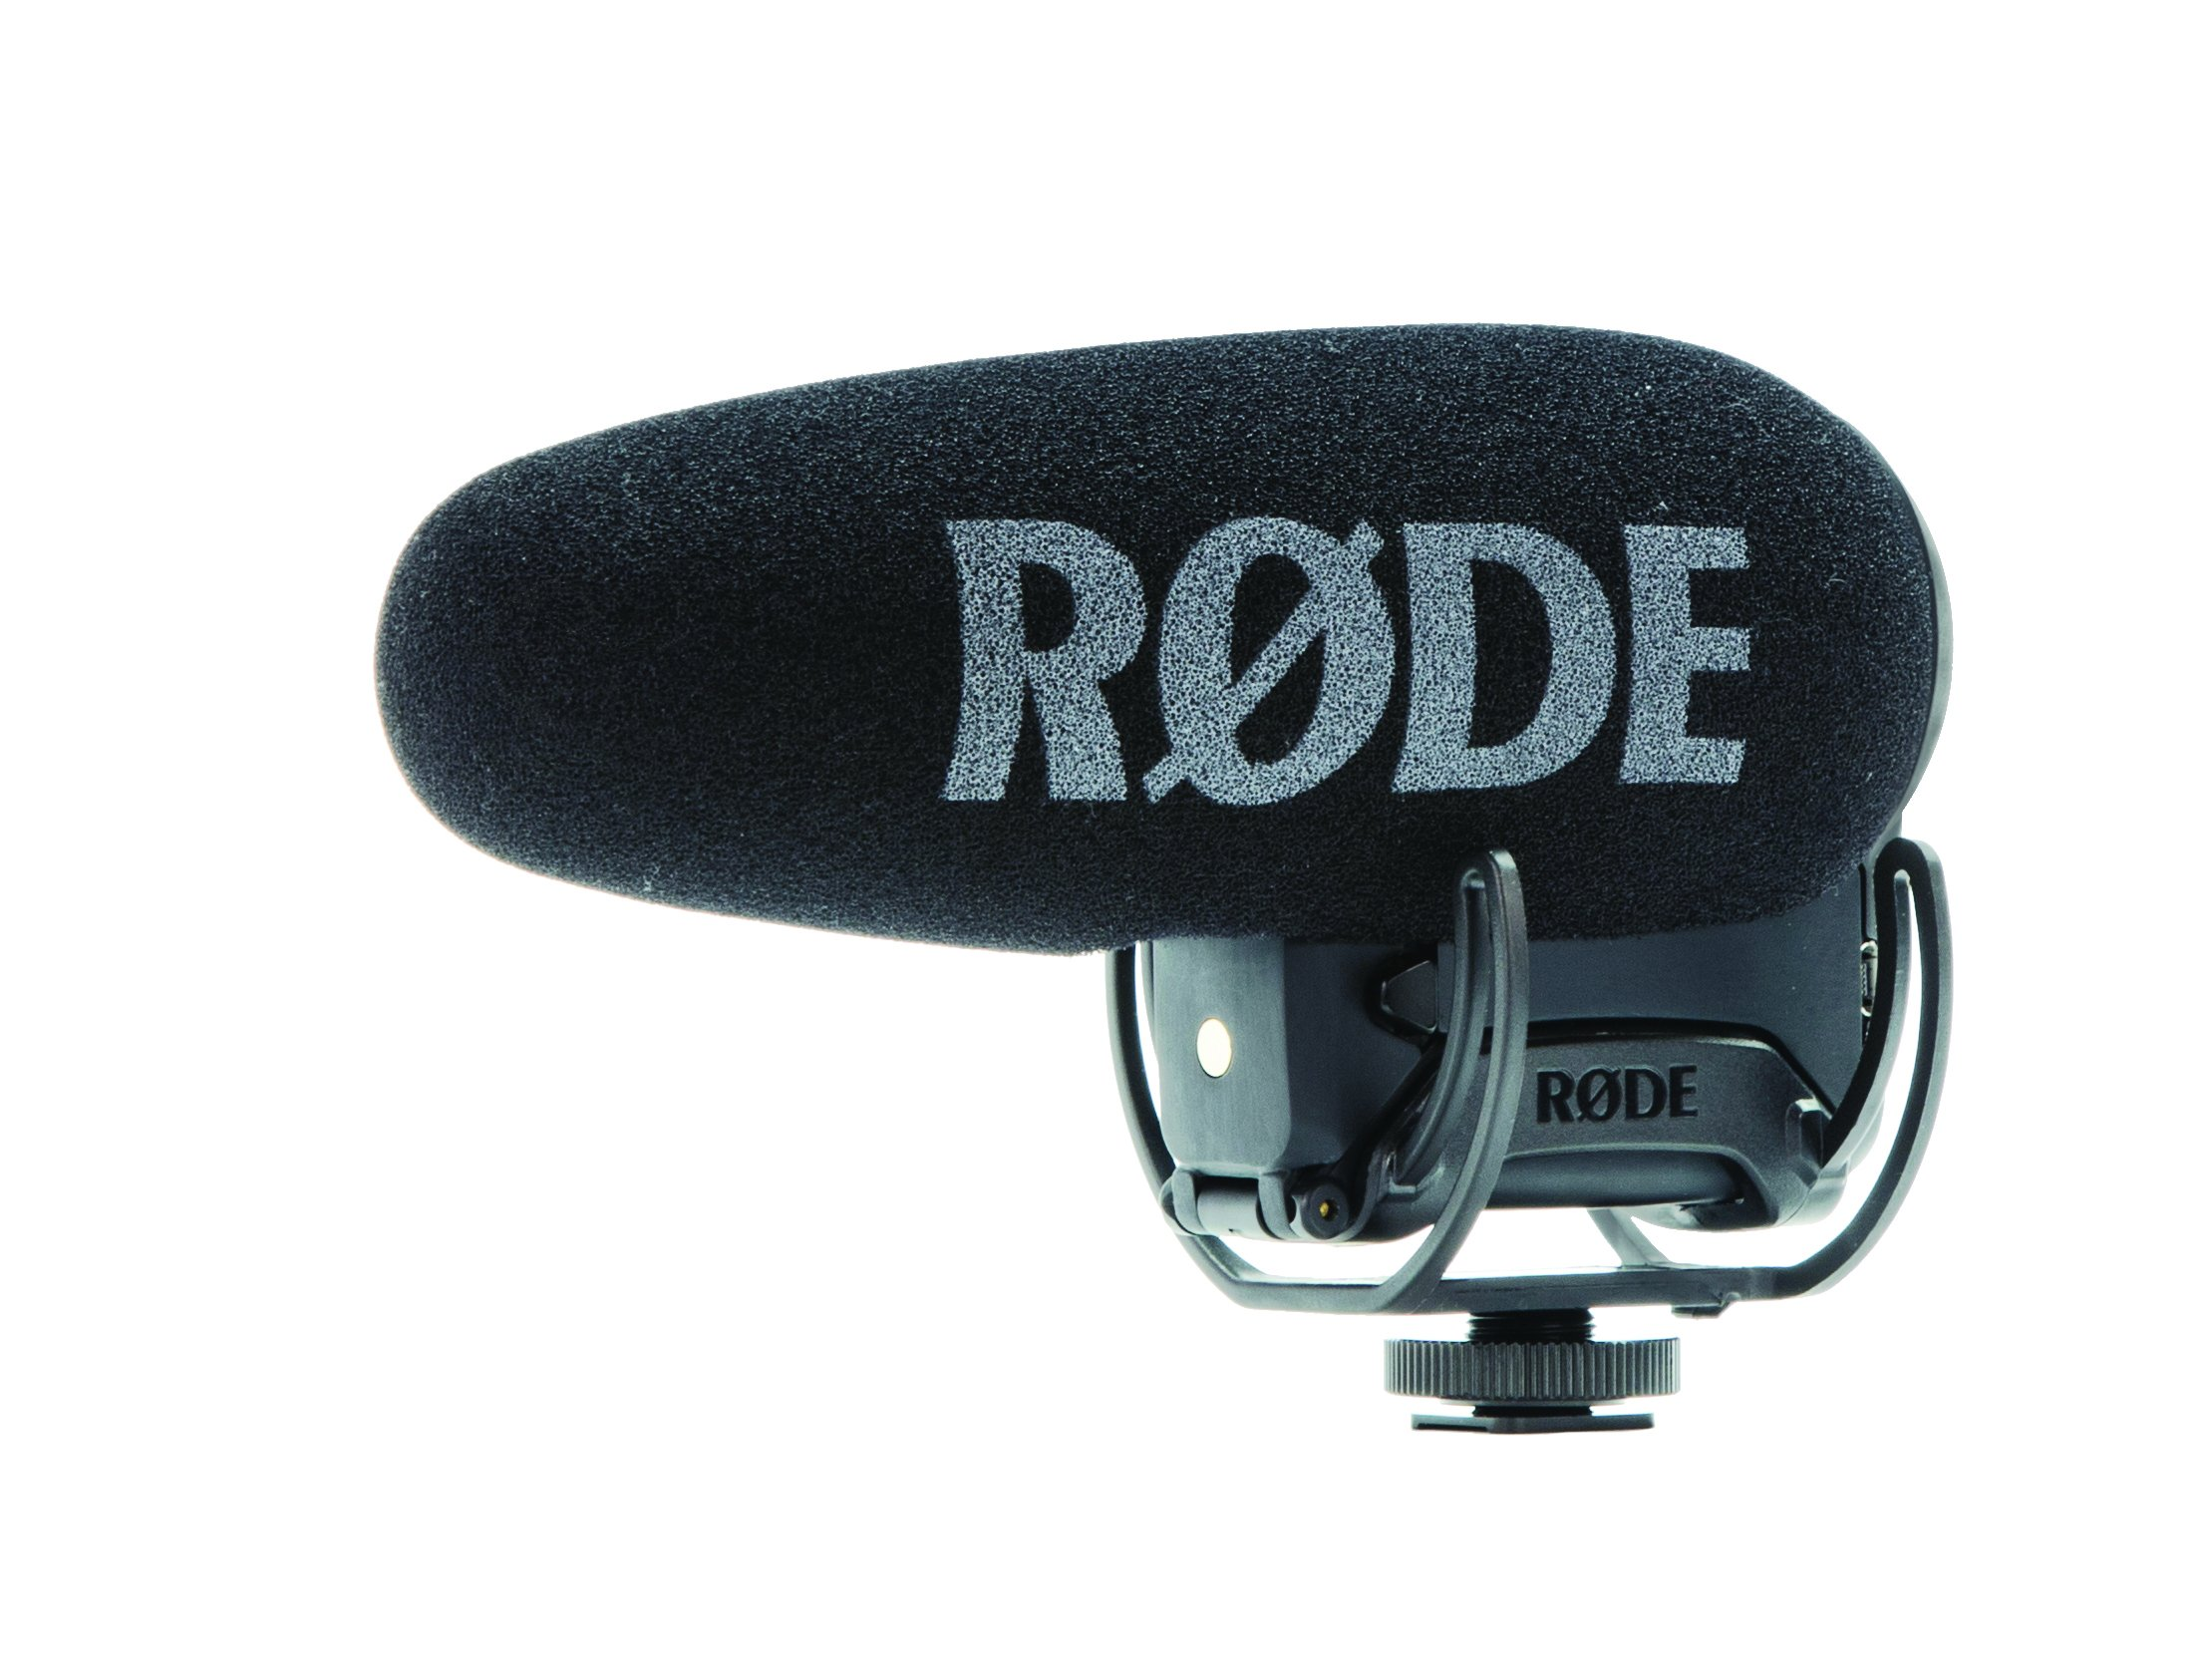 Rode VideoMic Pro+ Compact Directional On-Camera Shotgun Condenser Microphone by Rode